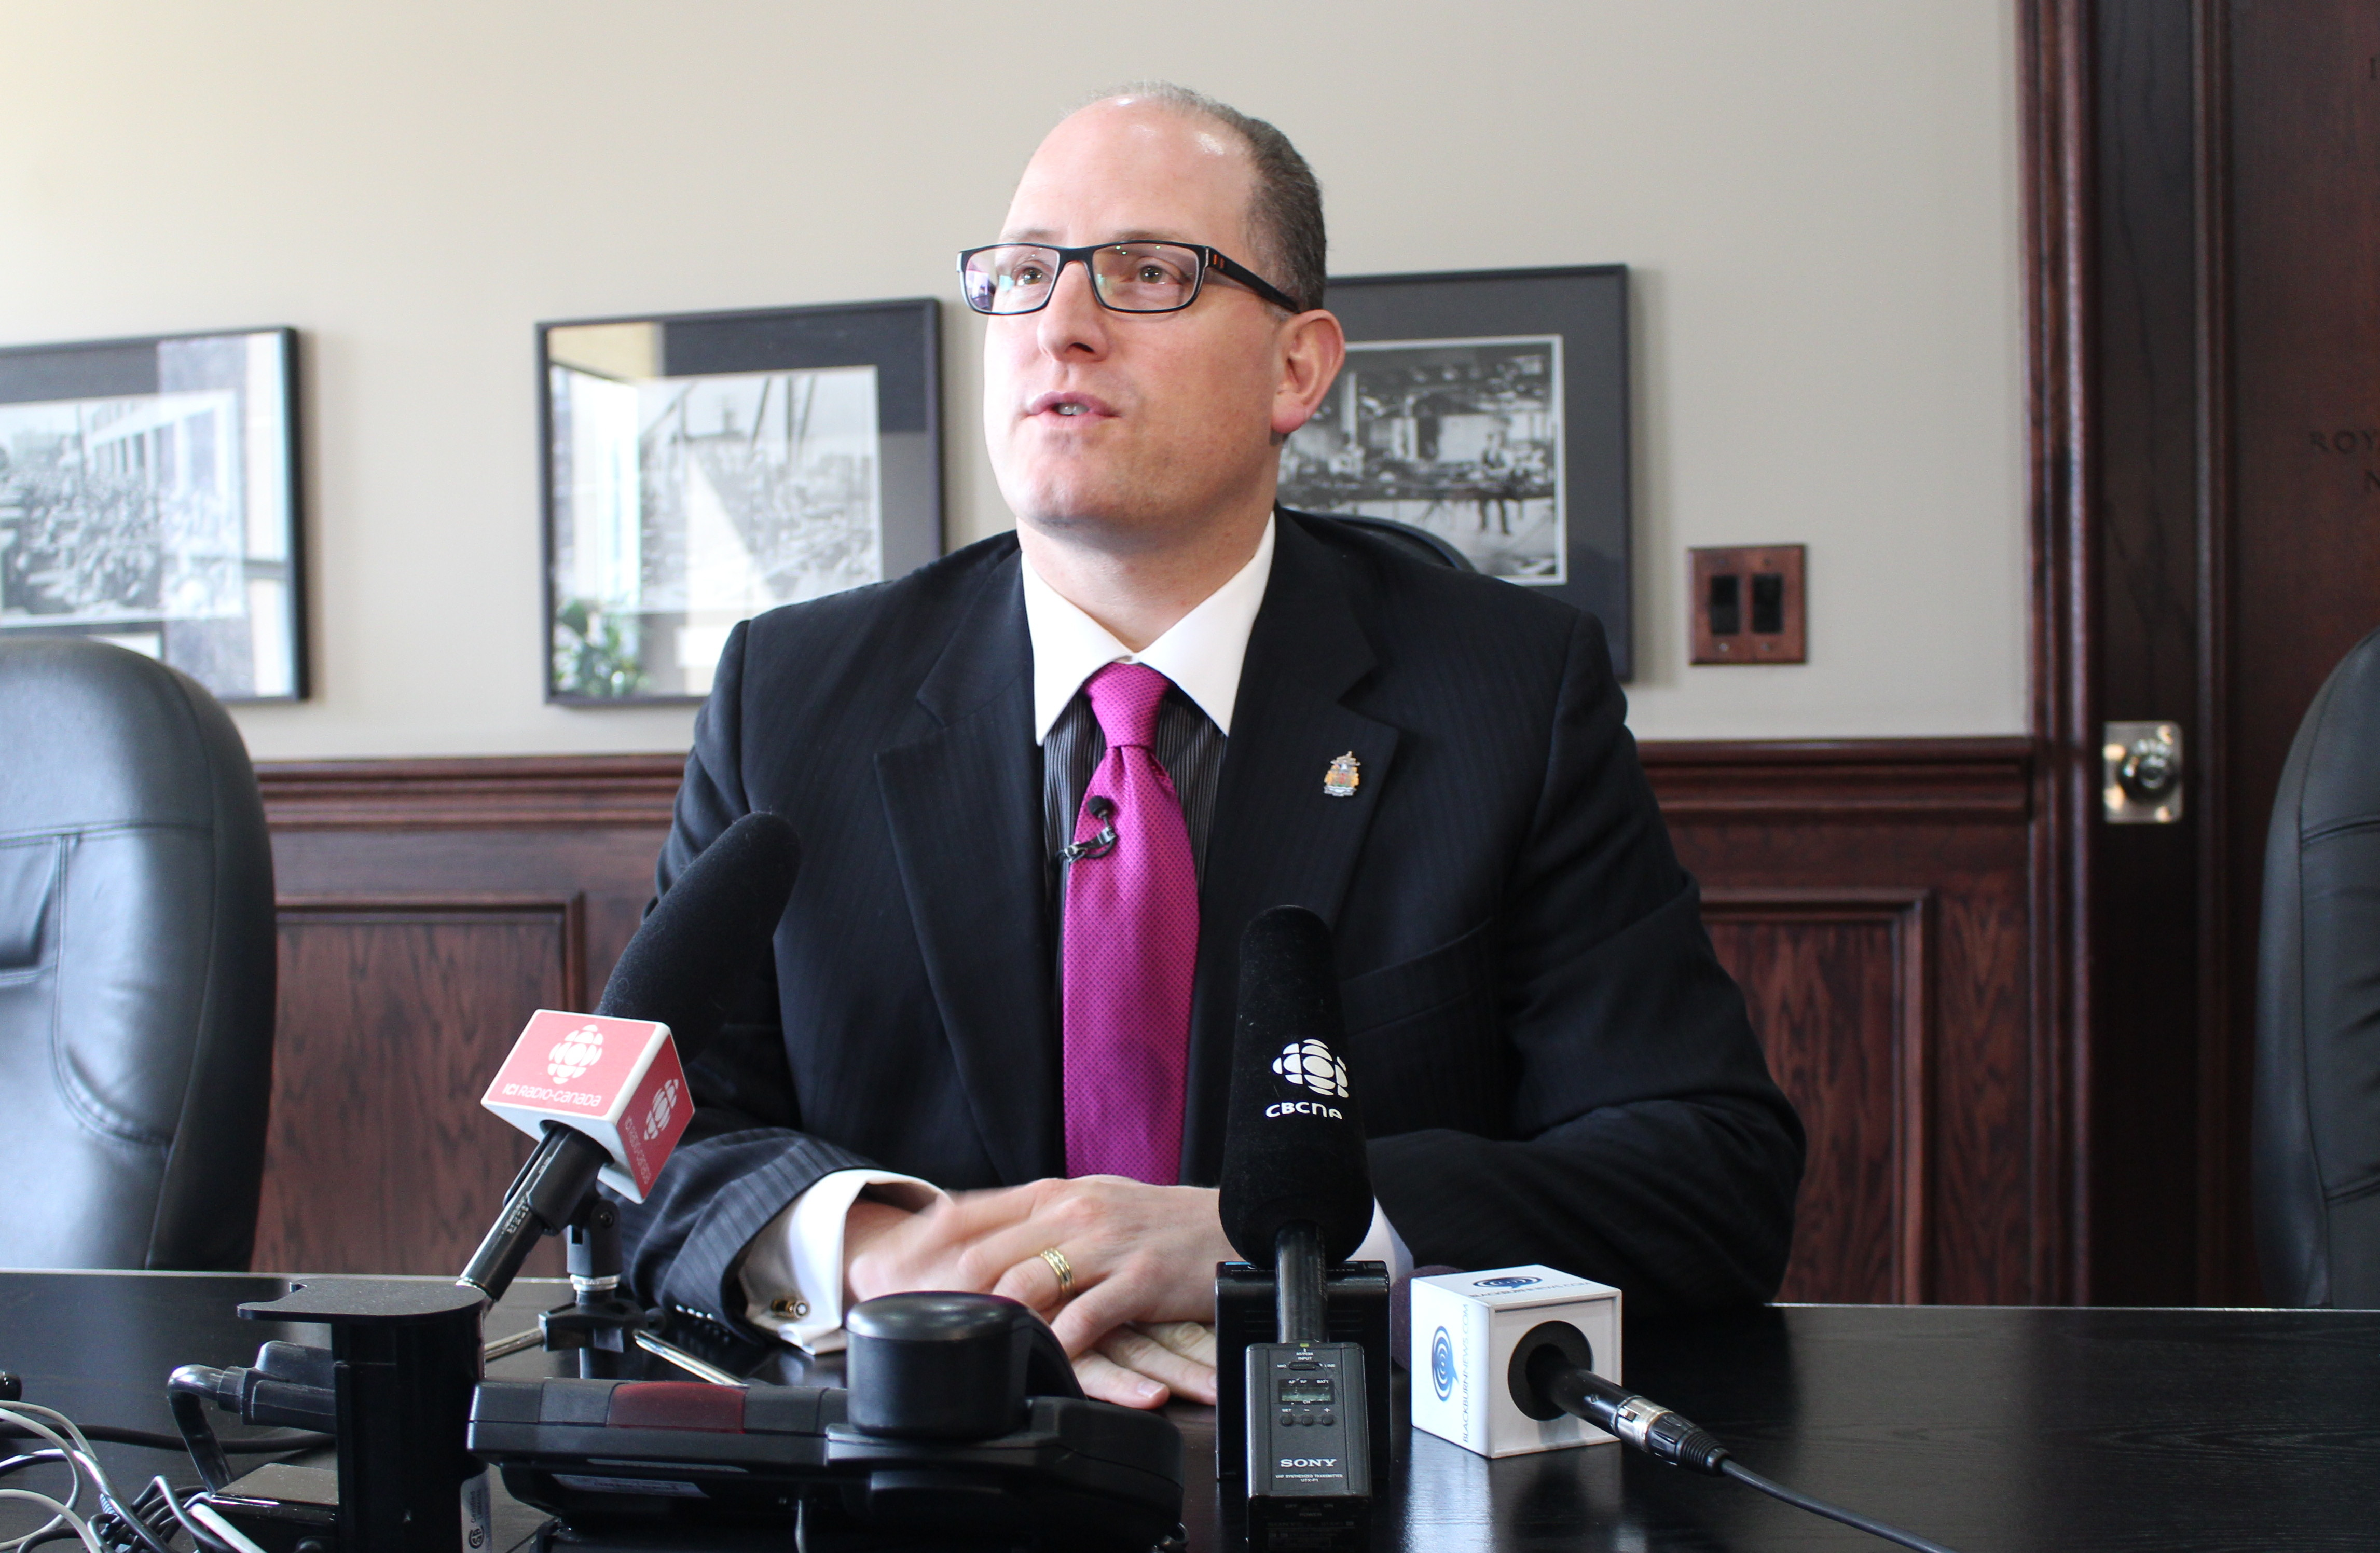 Windsor Mayor Drew Dilkens talks to the media in his office at City Hall, April 15, 2015. (Photo by Mike Vlasveld)